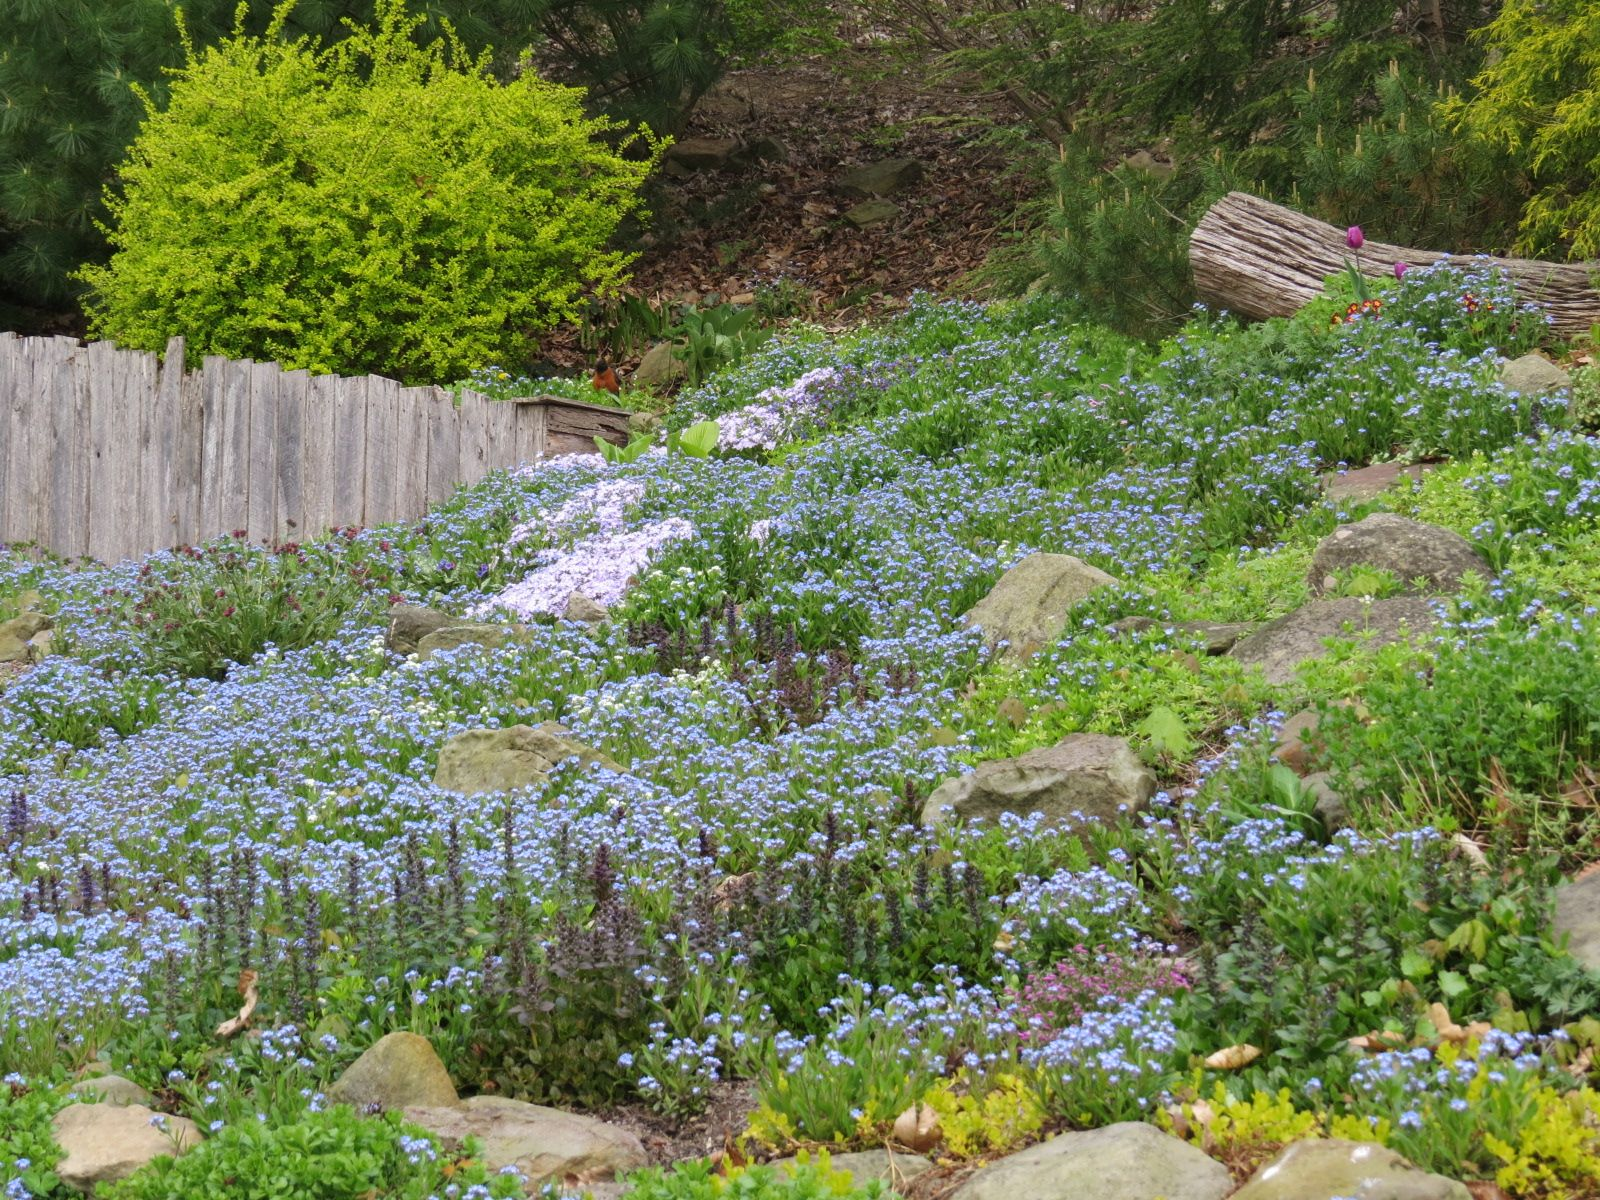 Spring flowers in shady rock garden. Visit: https://www.etsy.com/shop/GreenLeafGardens?ref=hdr_shop_menu